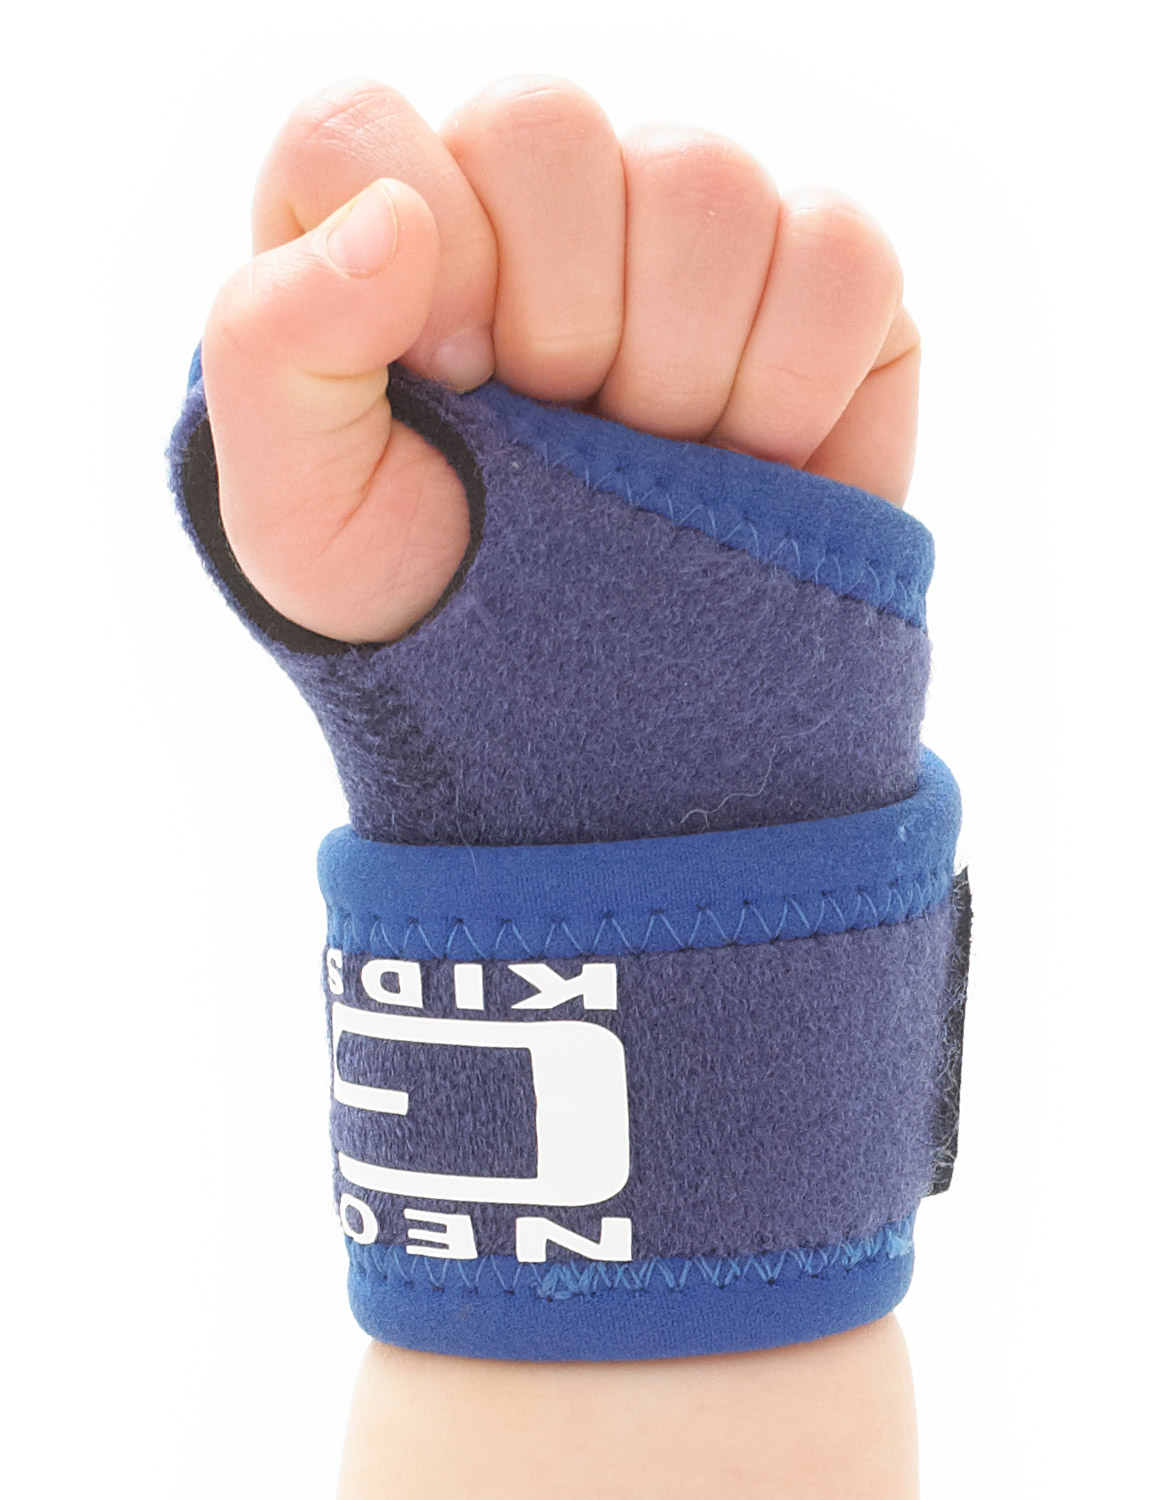 882K -KIDS WRIST SUPPORT  Specifically designed for the younger wearer and can be used to apply adjustable compression and support around the wrist. It can help to manage pain caused by joint or tendon overuse in the wrist or thumb. It helps with strain caused by repetitive wrist movements such as recreational and sporting activities. The durable, heat therapeutic neoprene helps provide warmth and support to muscles and joints to aid weak, injured or arthritic wrists.